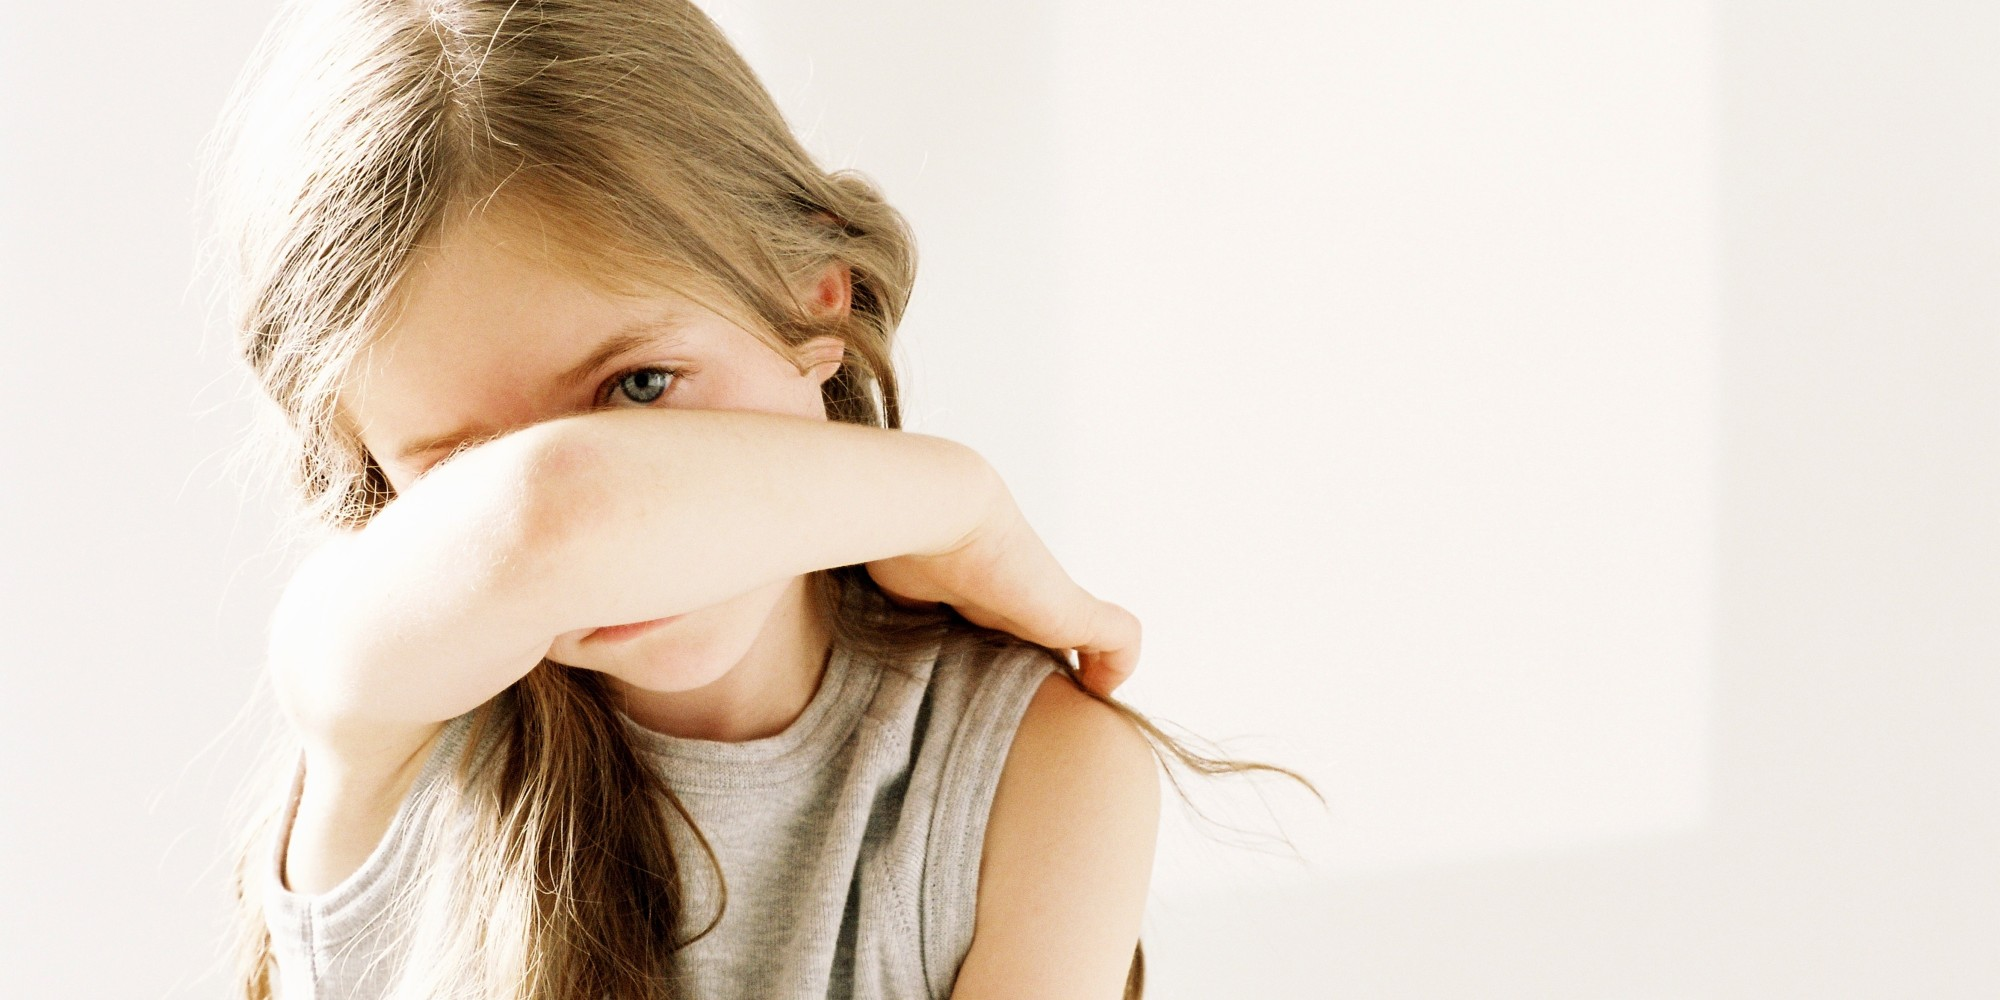 Girl with long hair anxiously holding her arm in front of her face